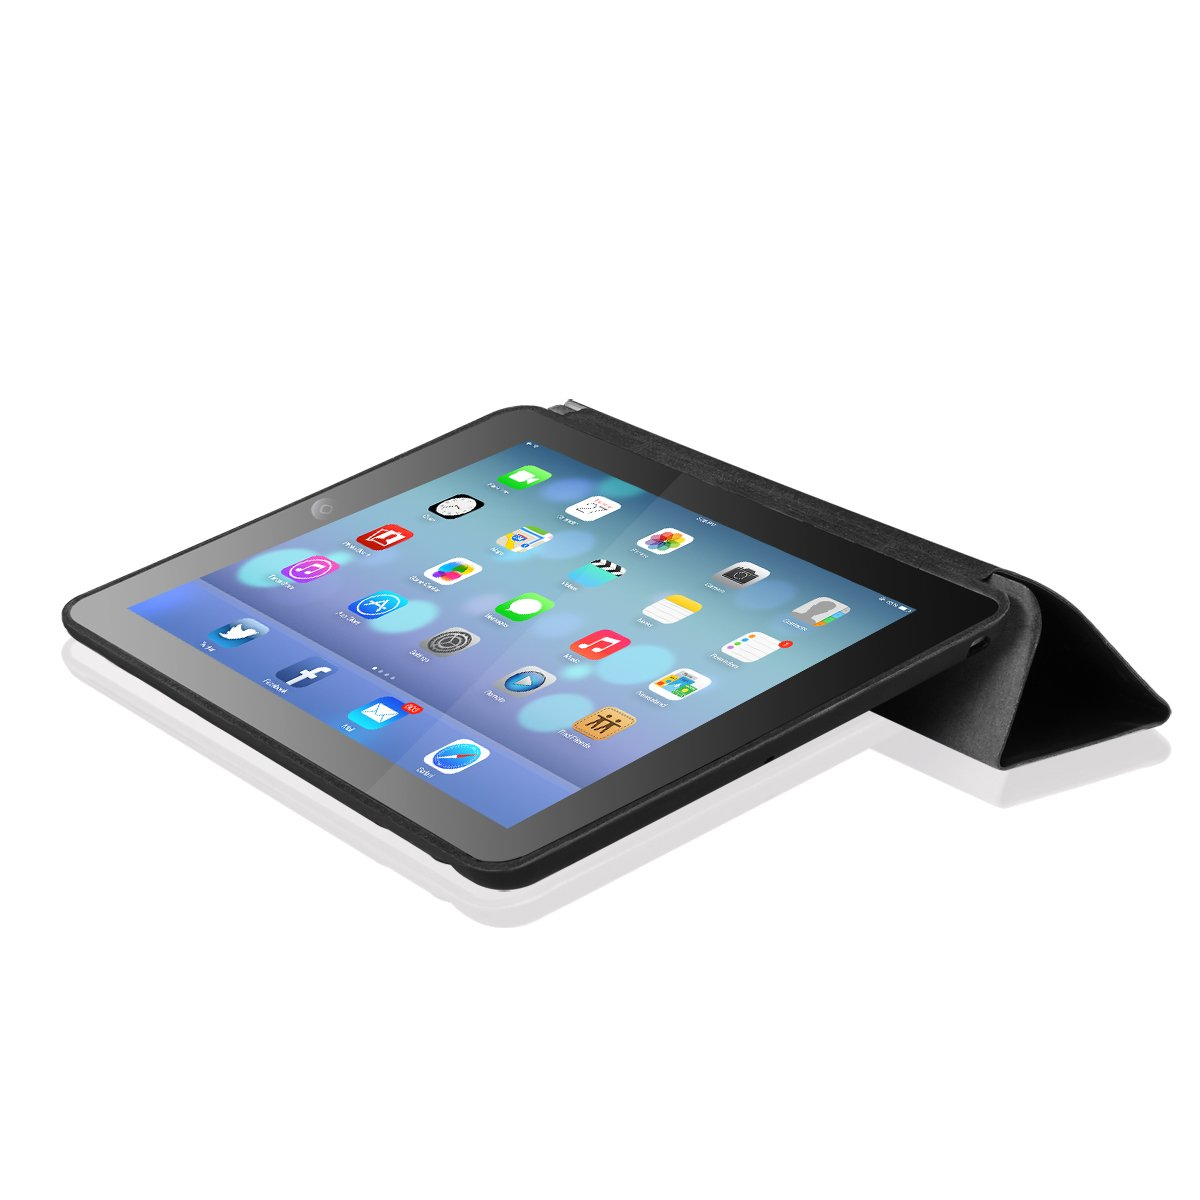 iPad Air Moko Smart Case